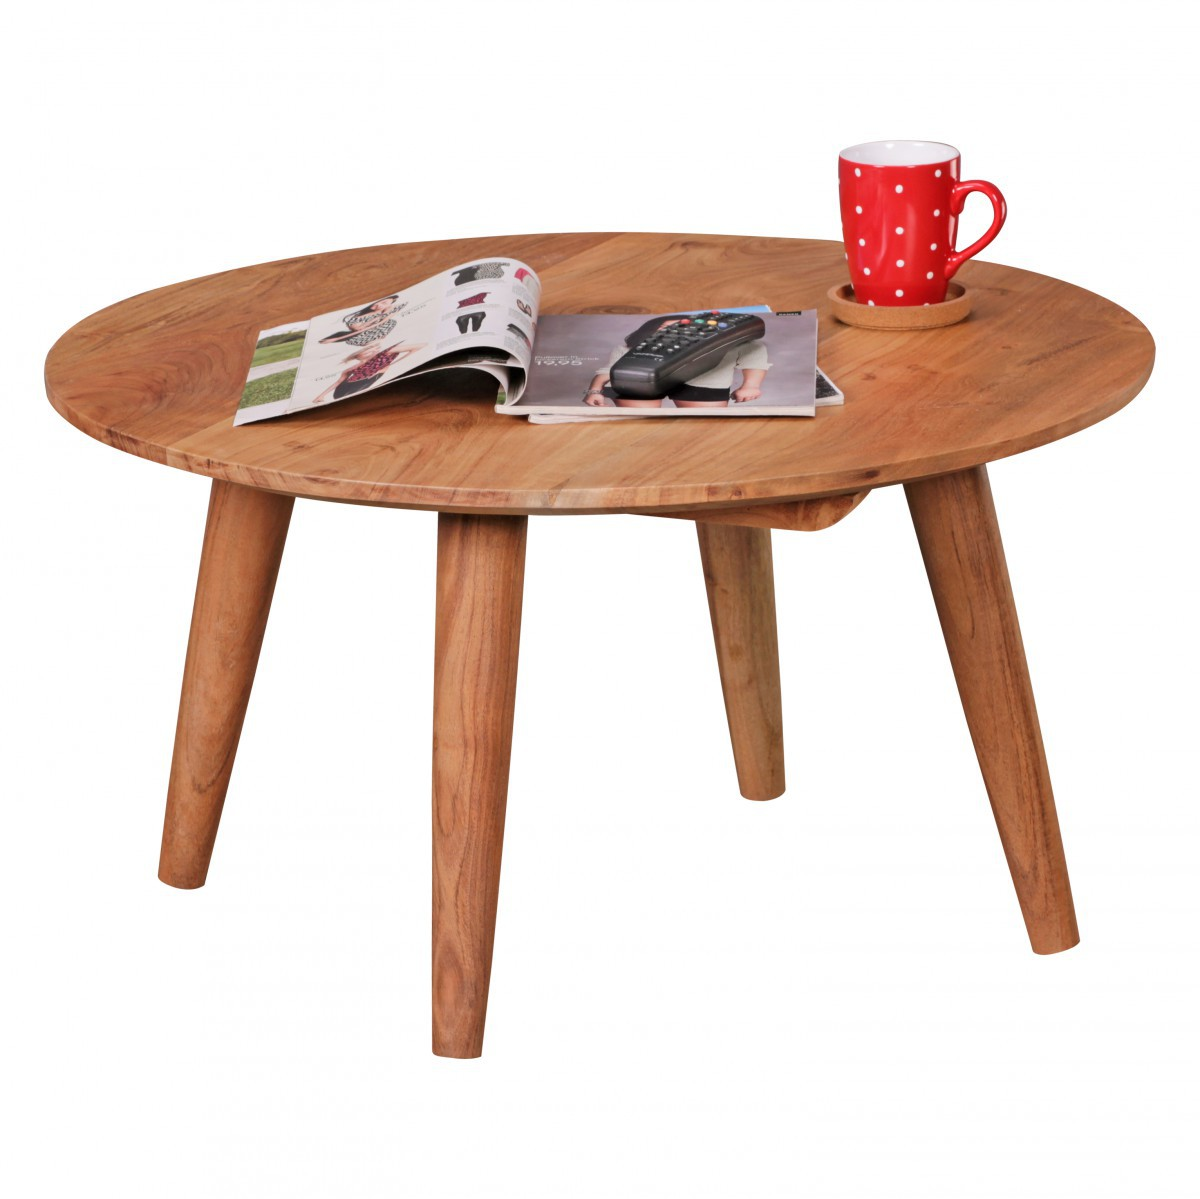 Finebuy table basse en bois massif acacia table basse - Table ronde bois extensible ...